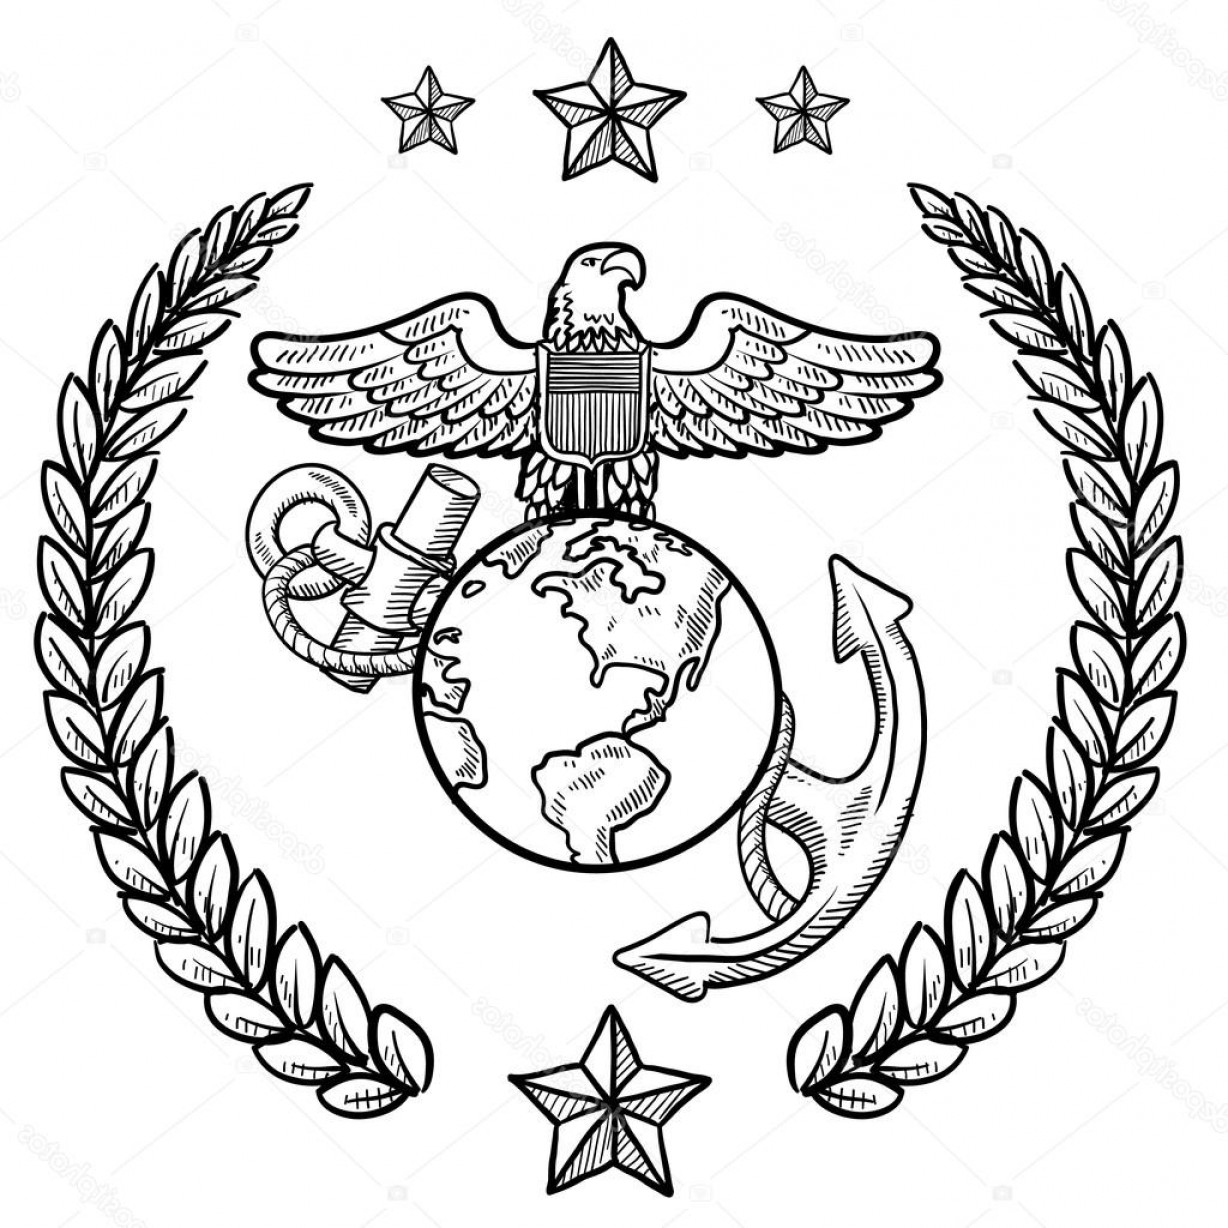 1228x1228 Us Marines Military Vector Art Arenawp